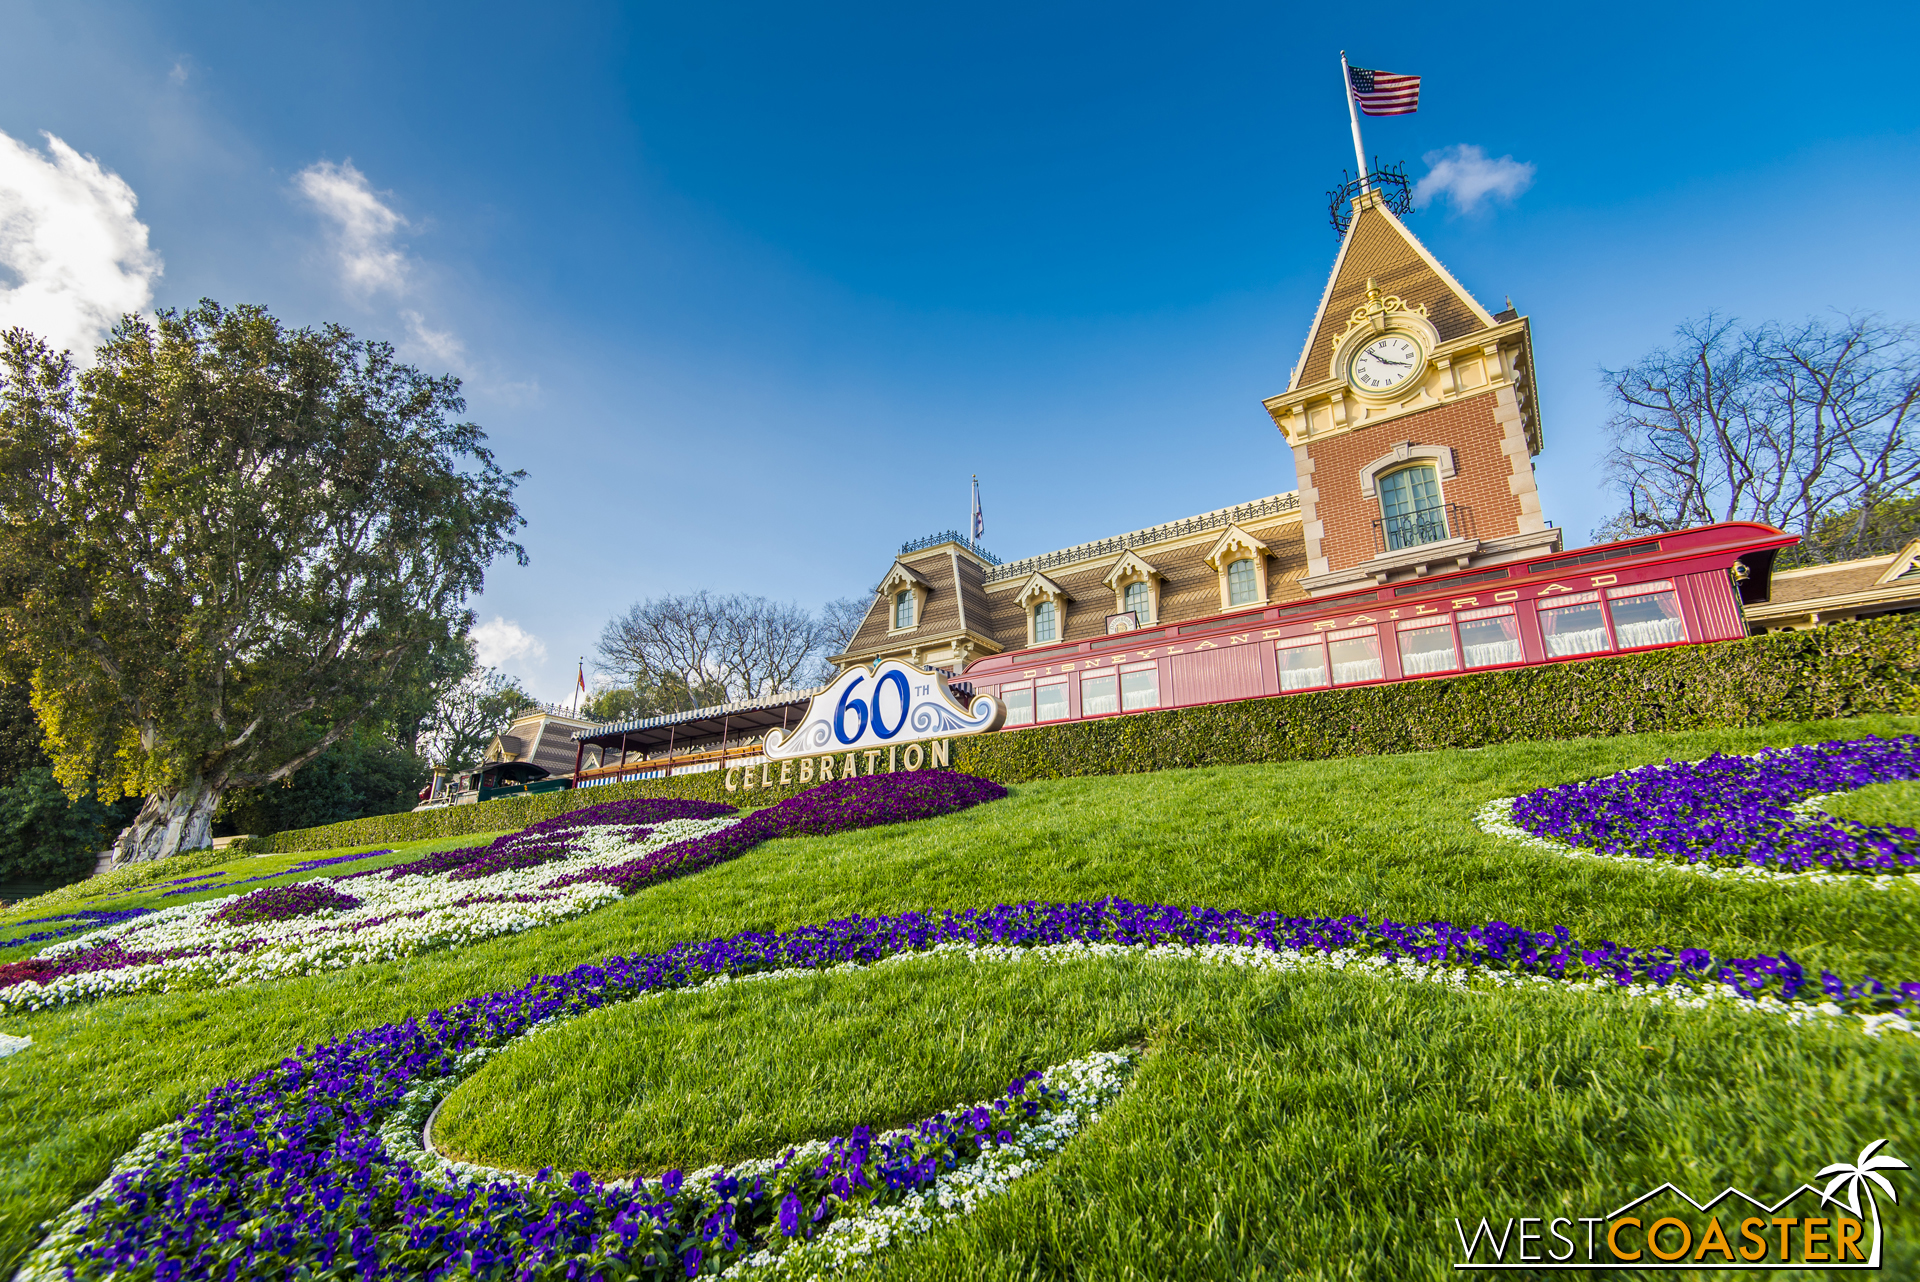 The Disneyland Railroad is also closed long term, but guests can actually go up at Main Street and New Orleans Square and walk around and explore the steam engines and cars parked there.